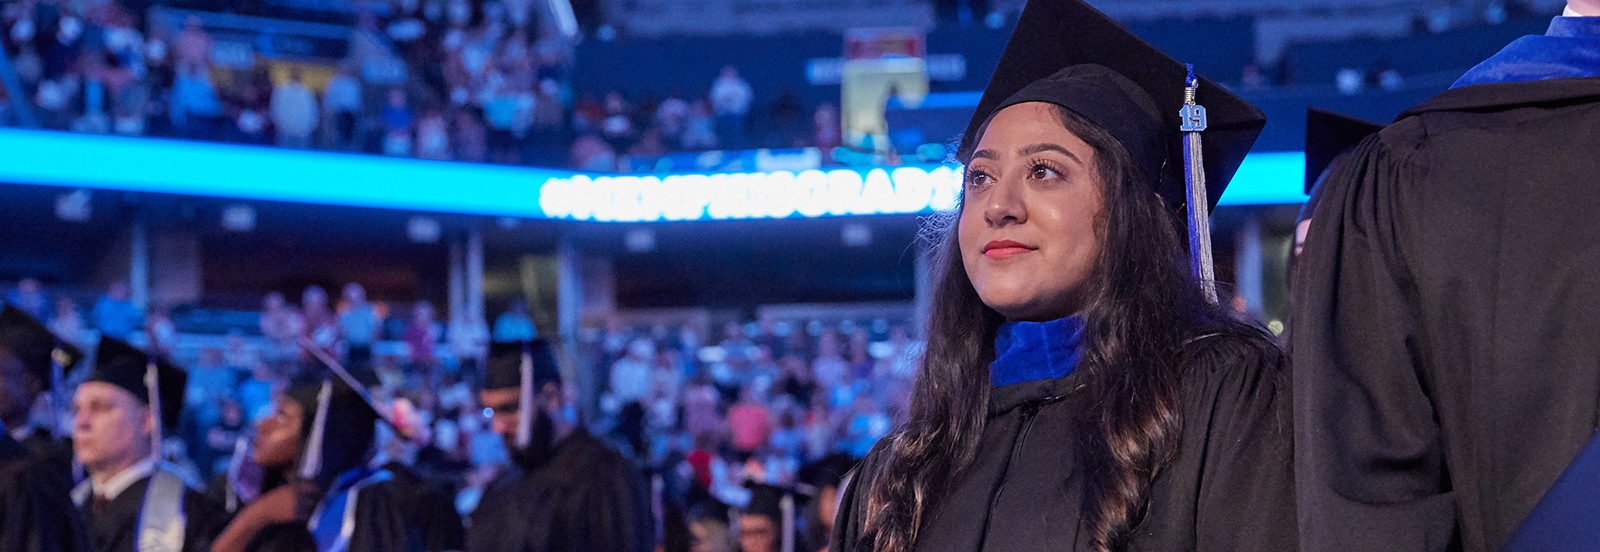 UofM Summer 2019 Commencement